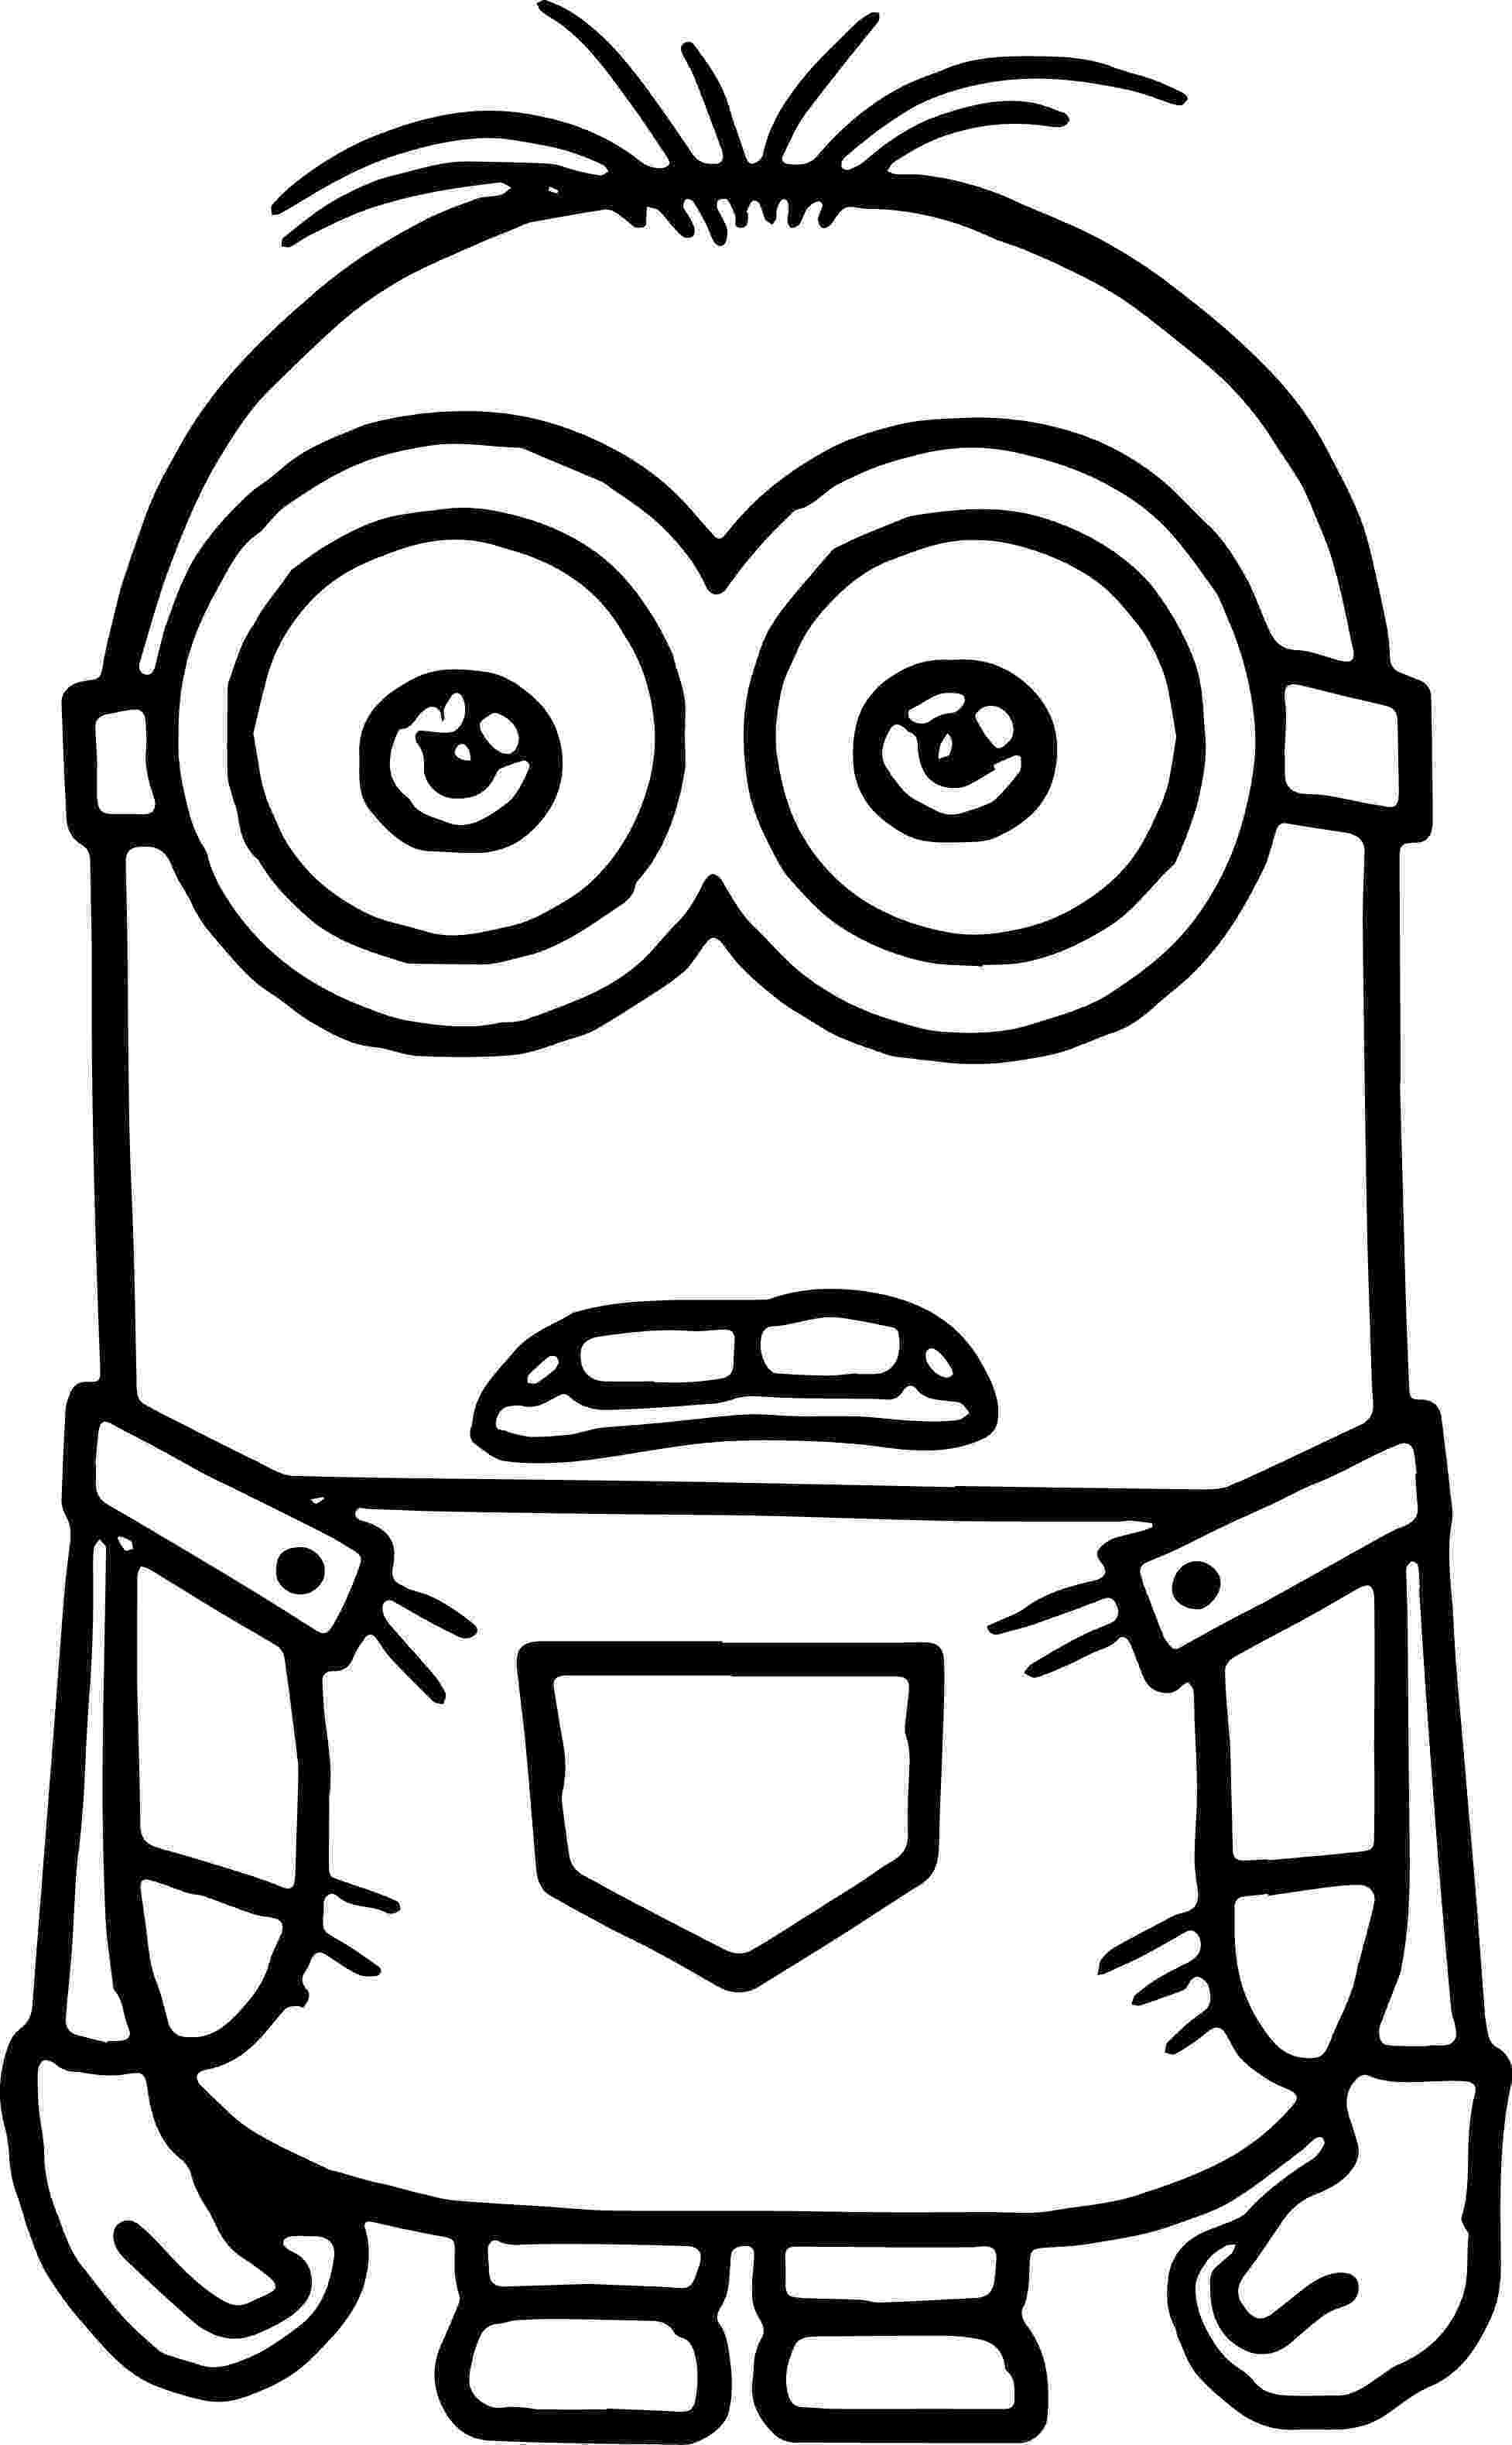 minion coloring pages online fun learn free worksheets for kid minions free coloring pages minion online